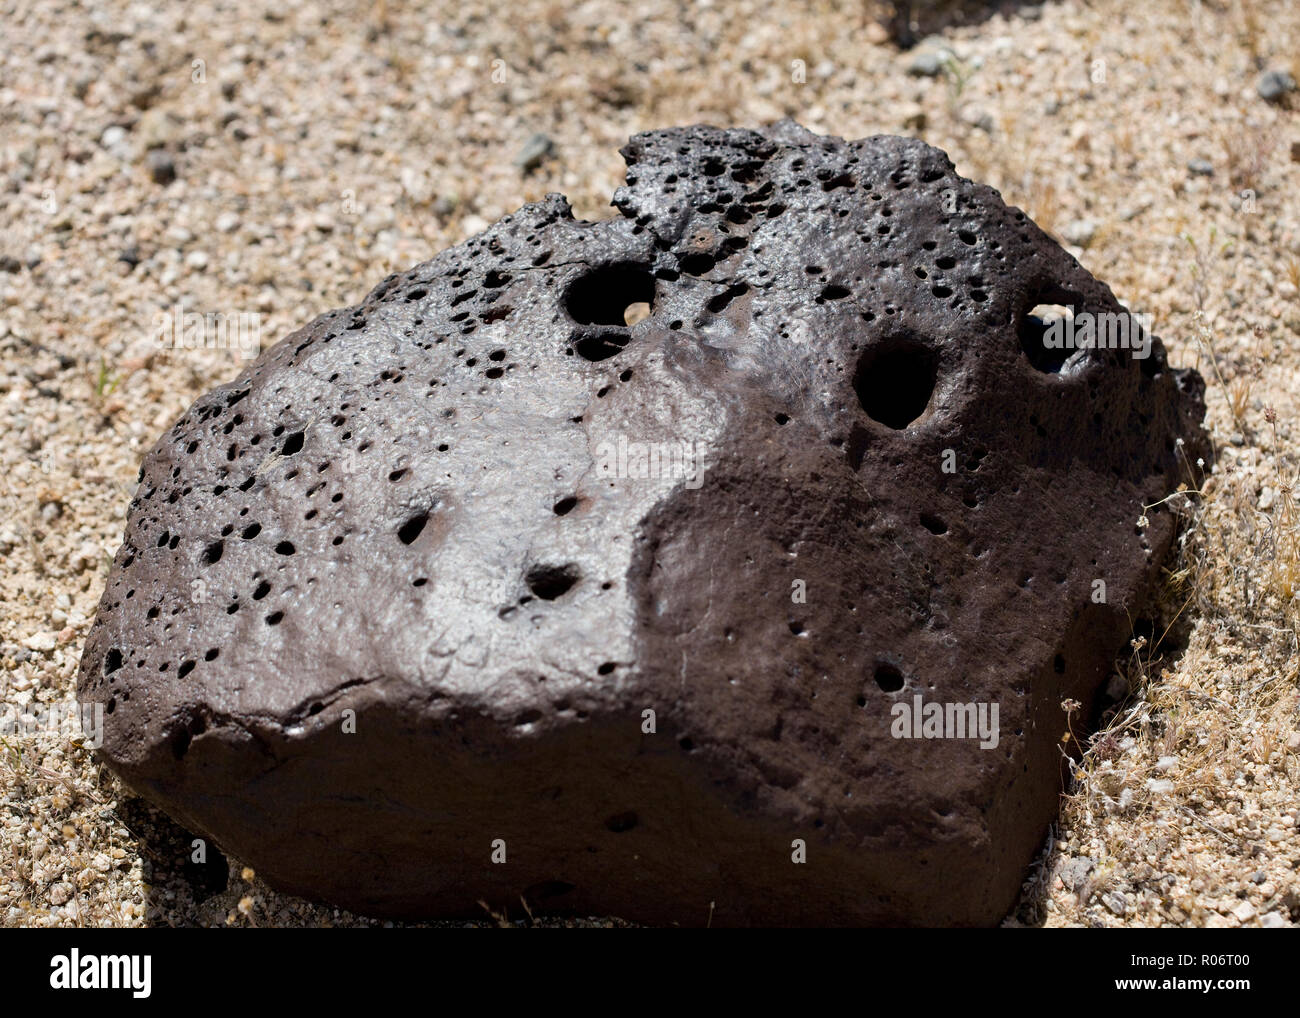 Igneous volcanic rock (lava rock) - California USA - Stock Image